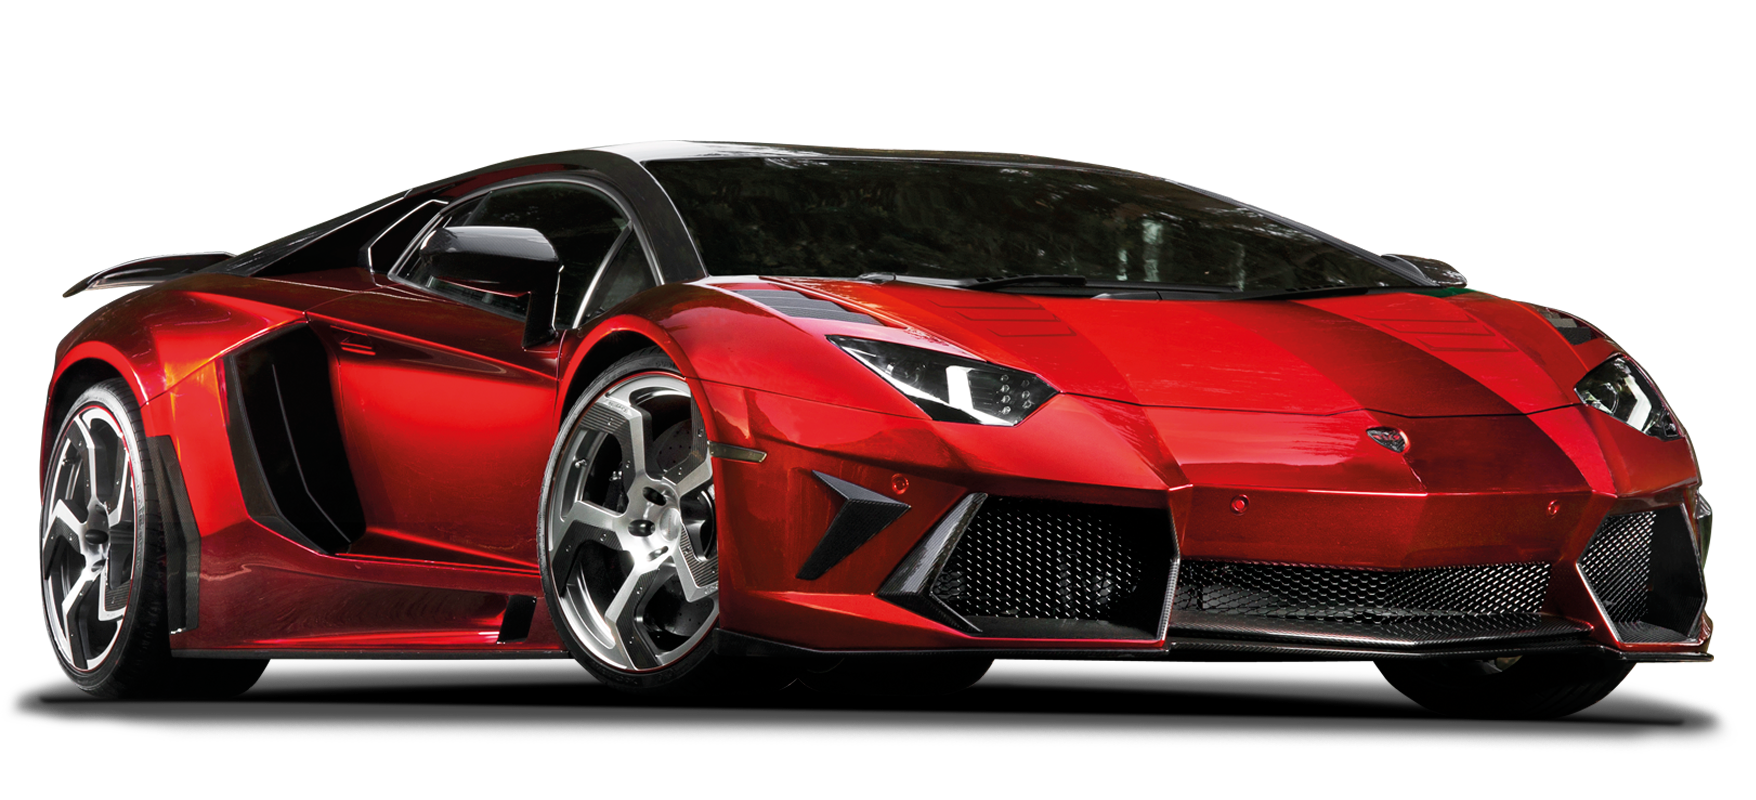 Image result for lamborghini png red